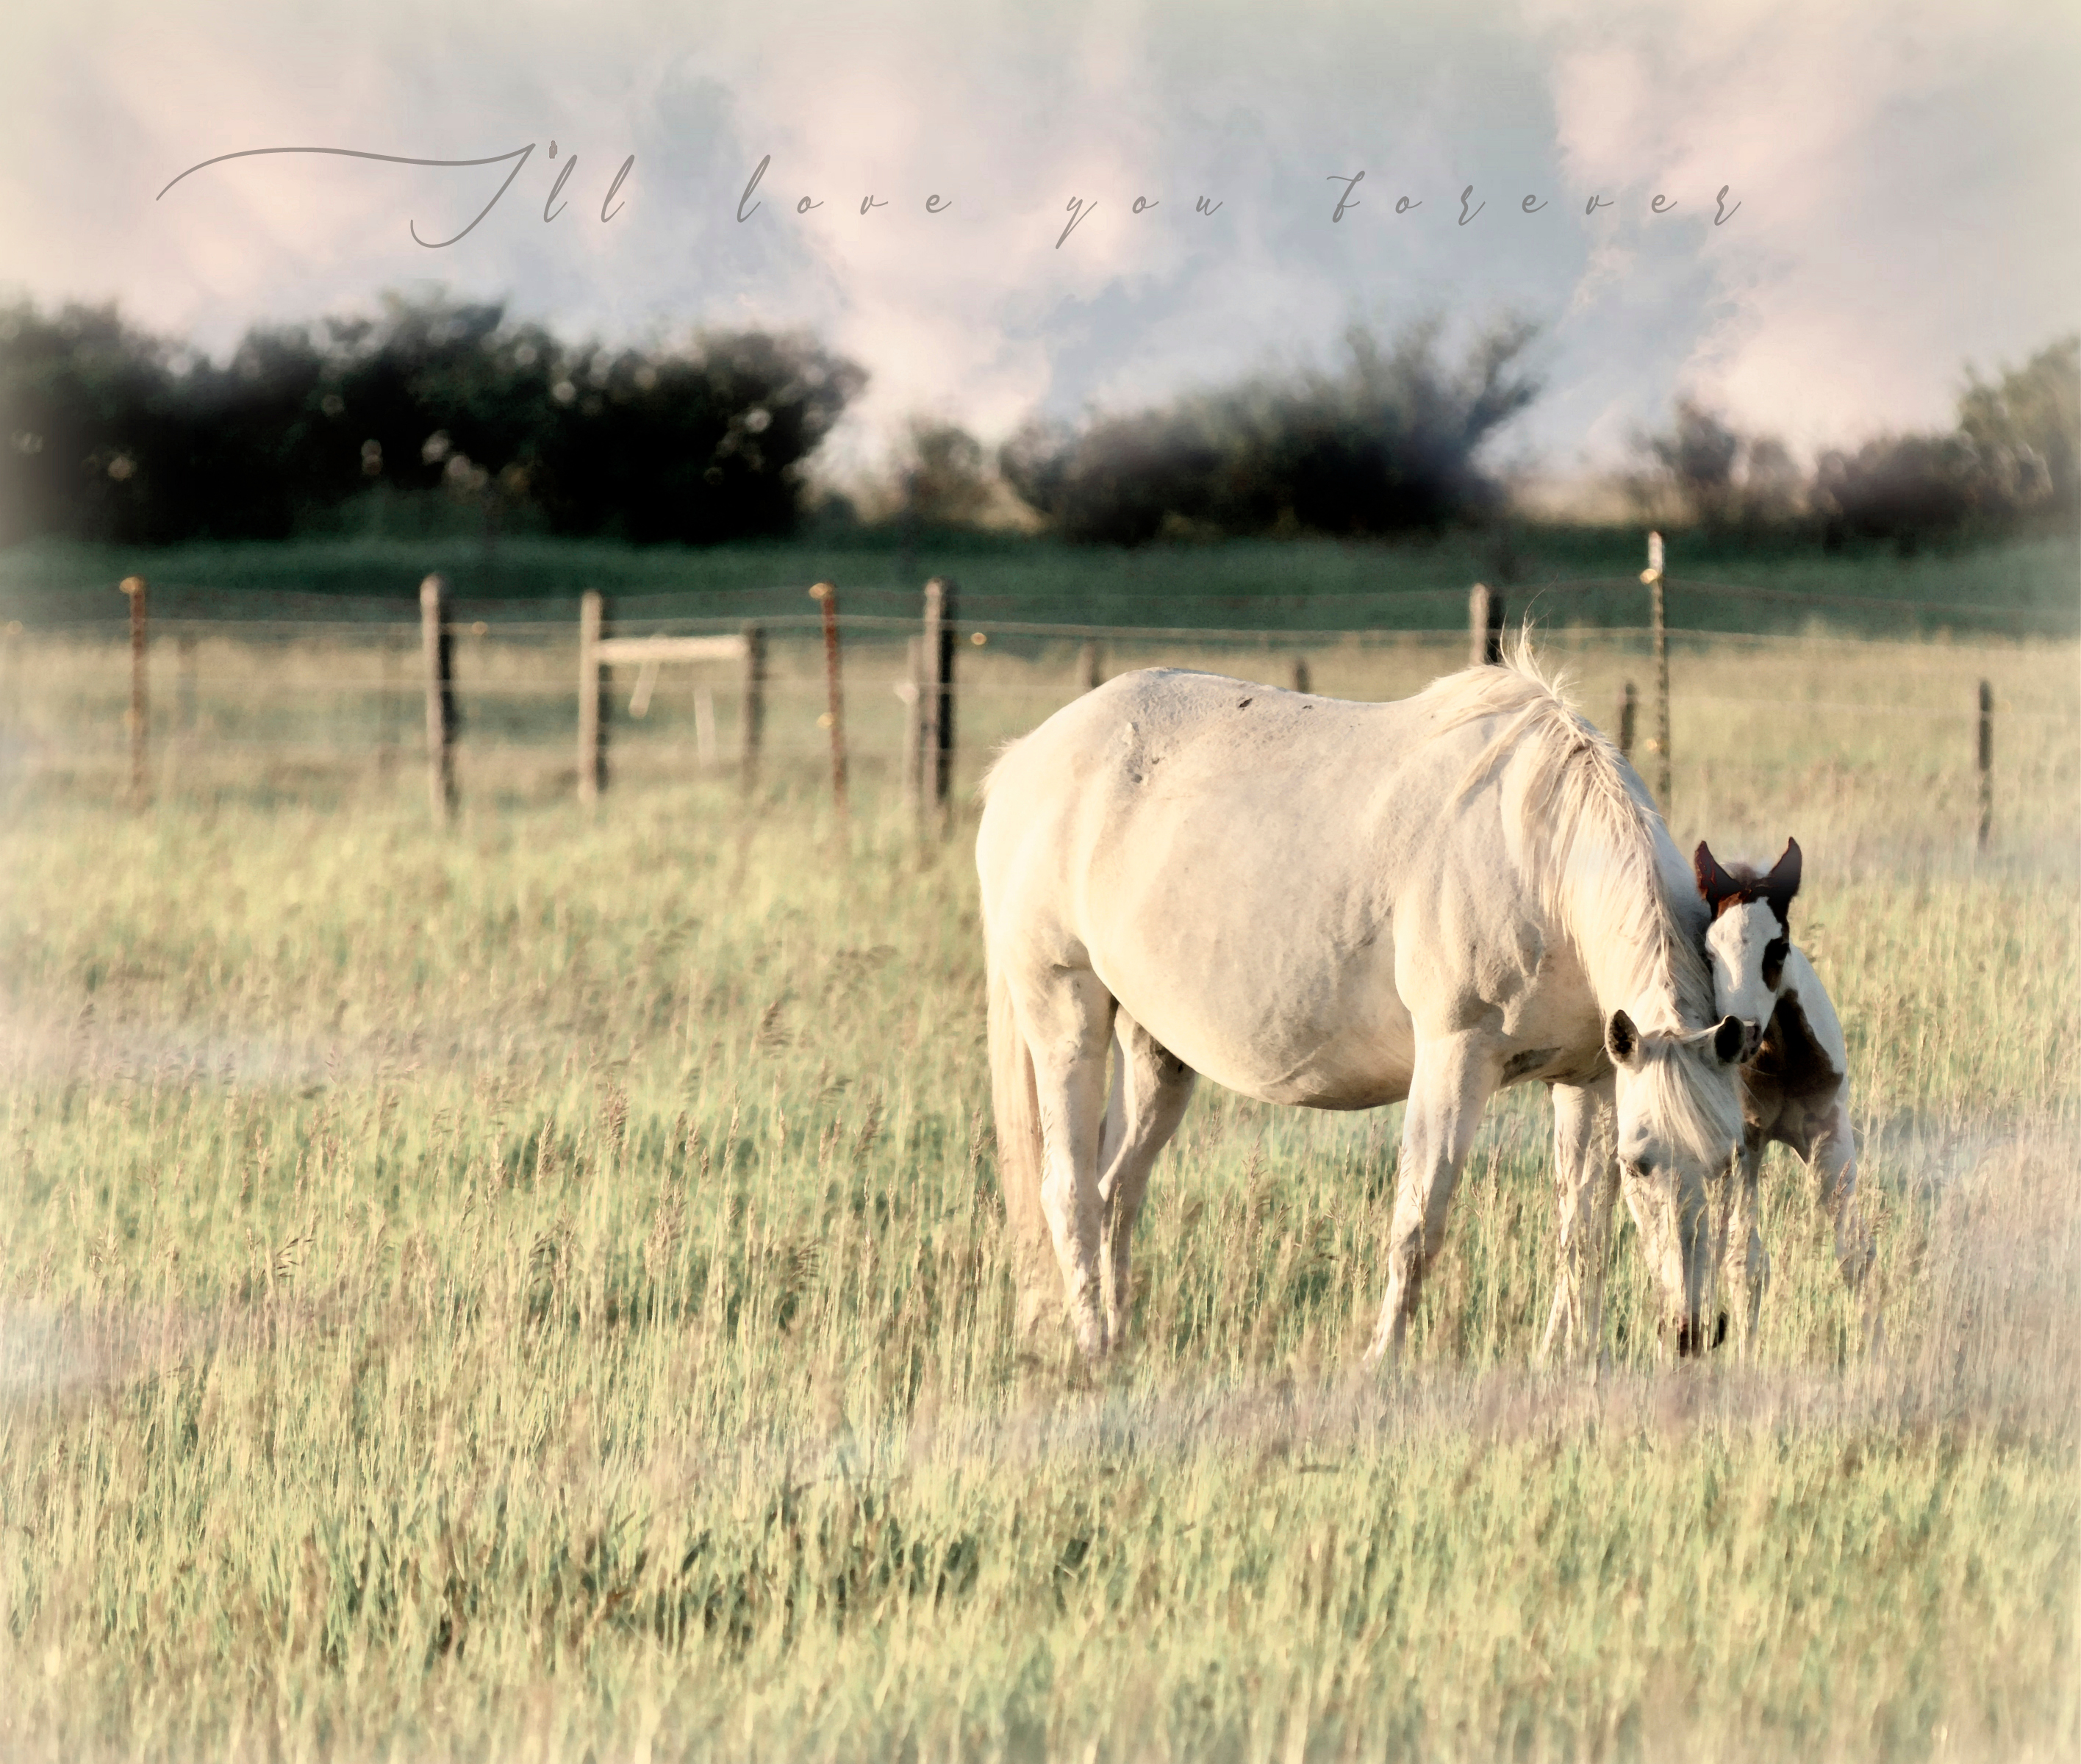 Horse and colt lean ss dynpjr